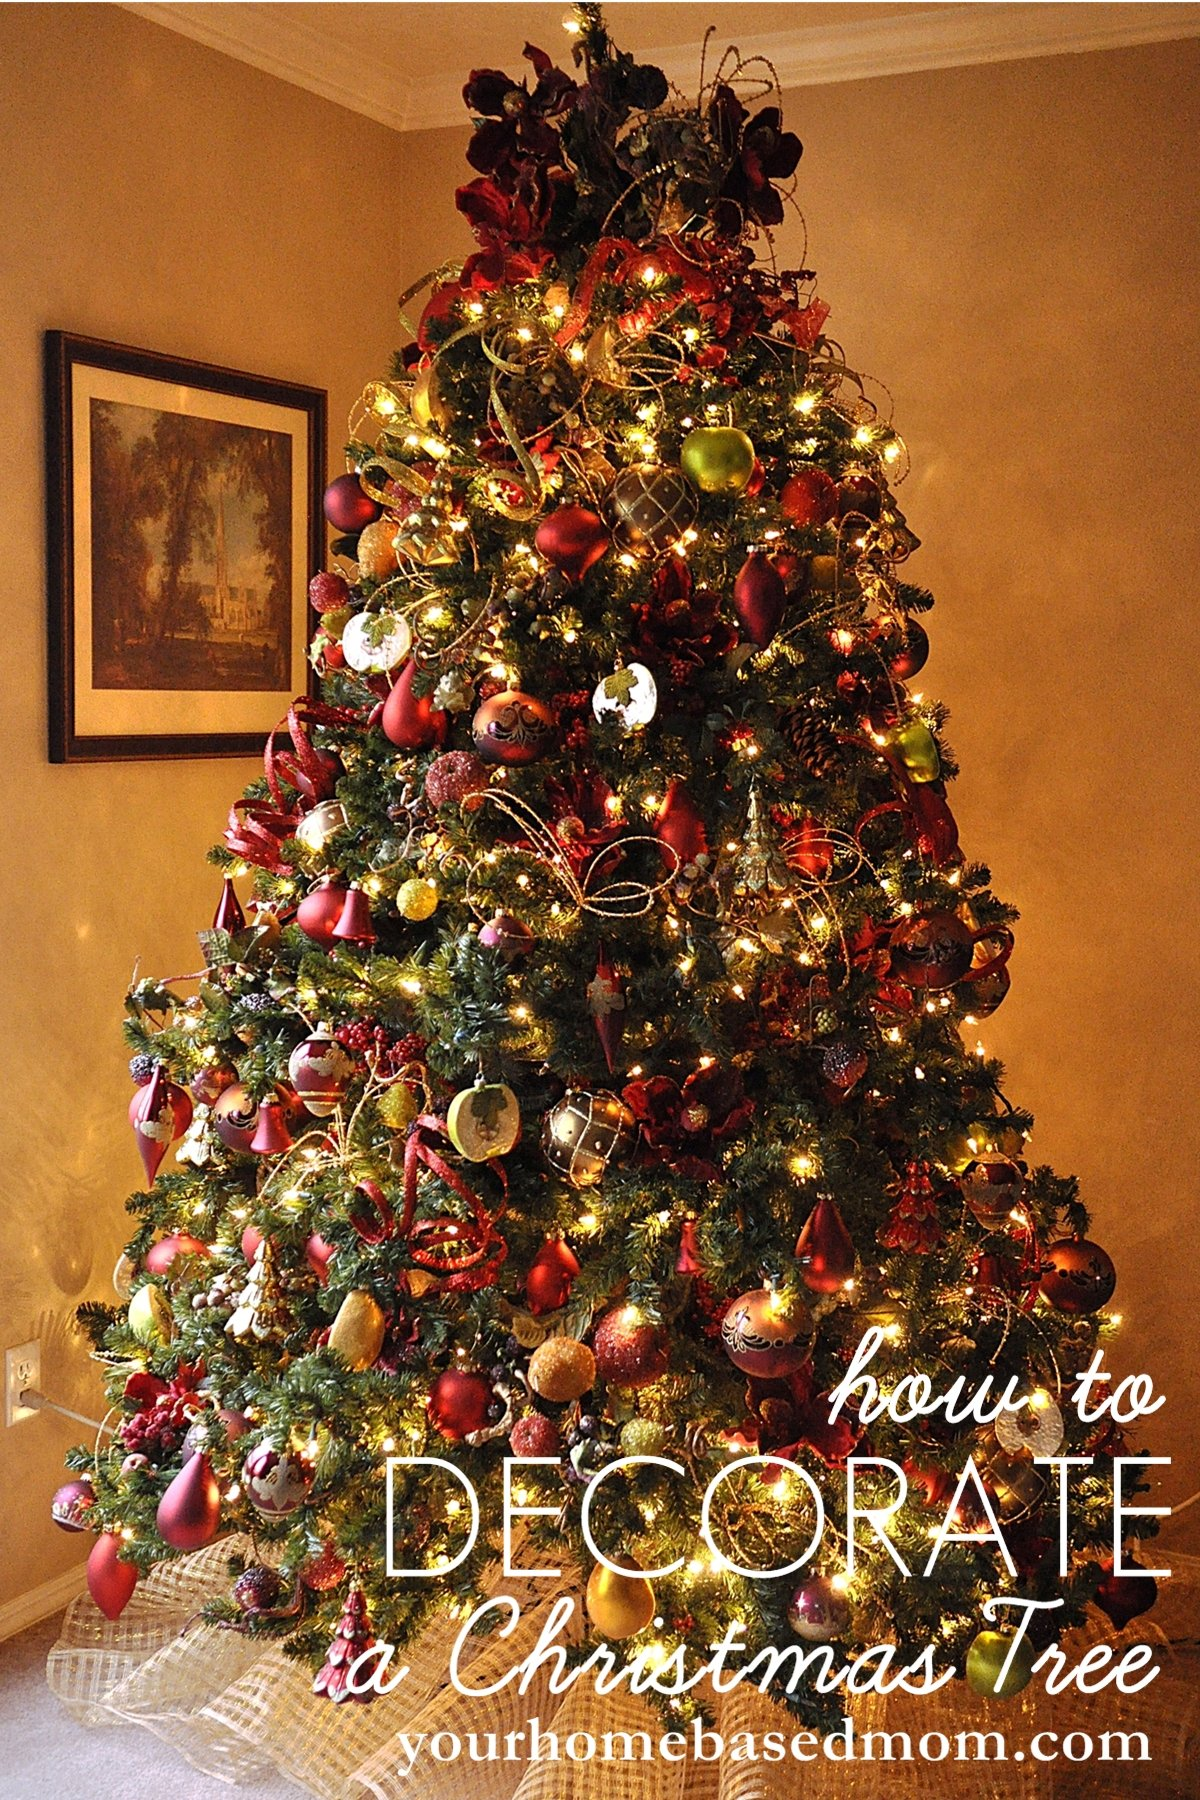 decorate a christmas tree - How To Decorate A Staircase For Christmas With Deco Mesh